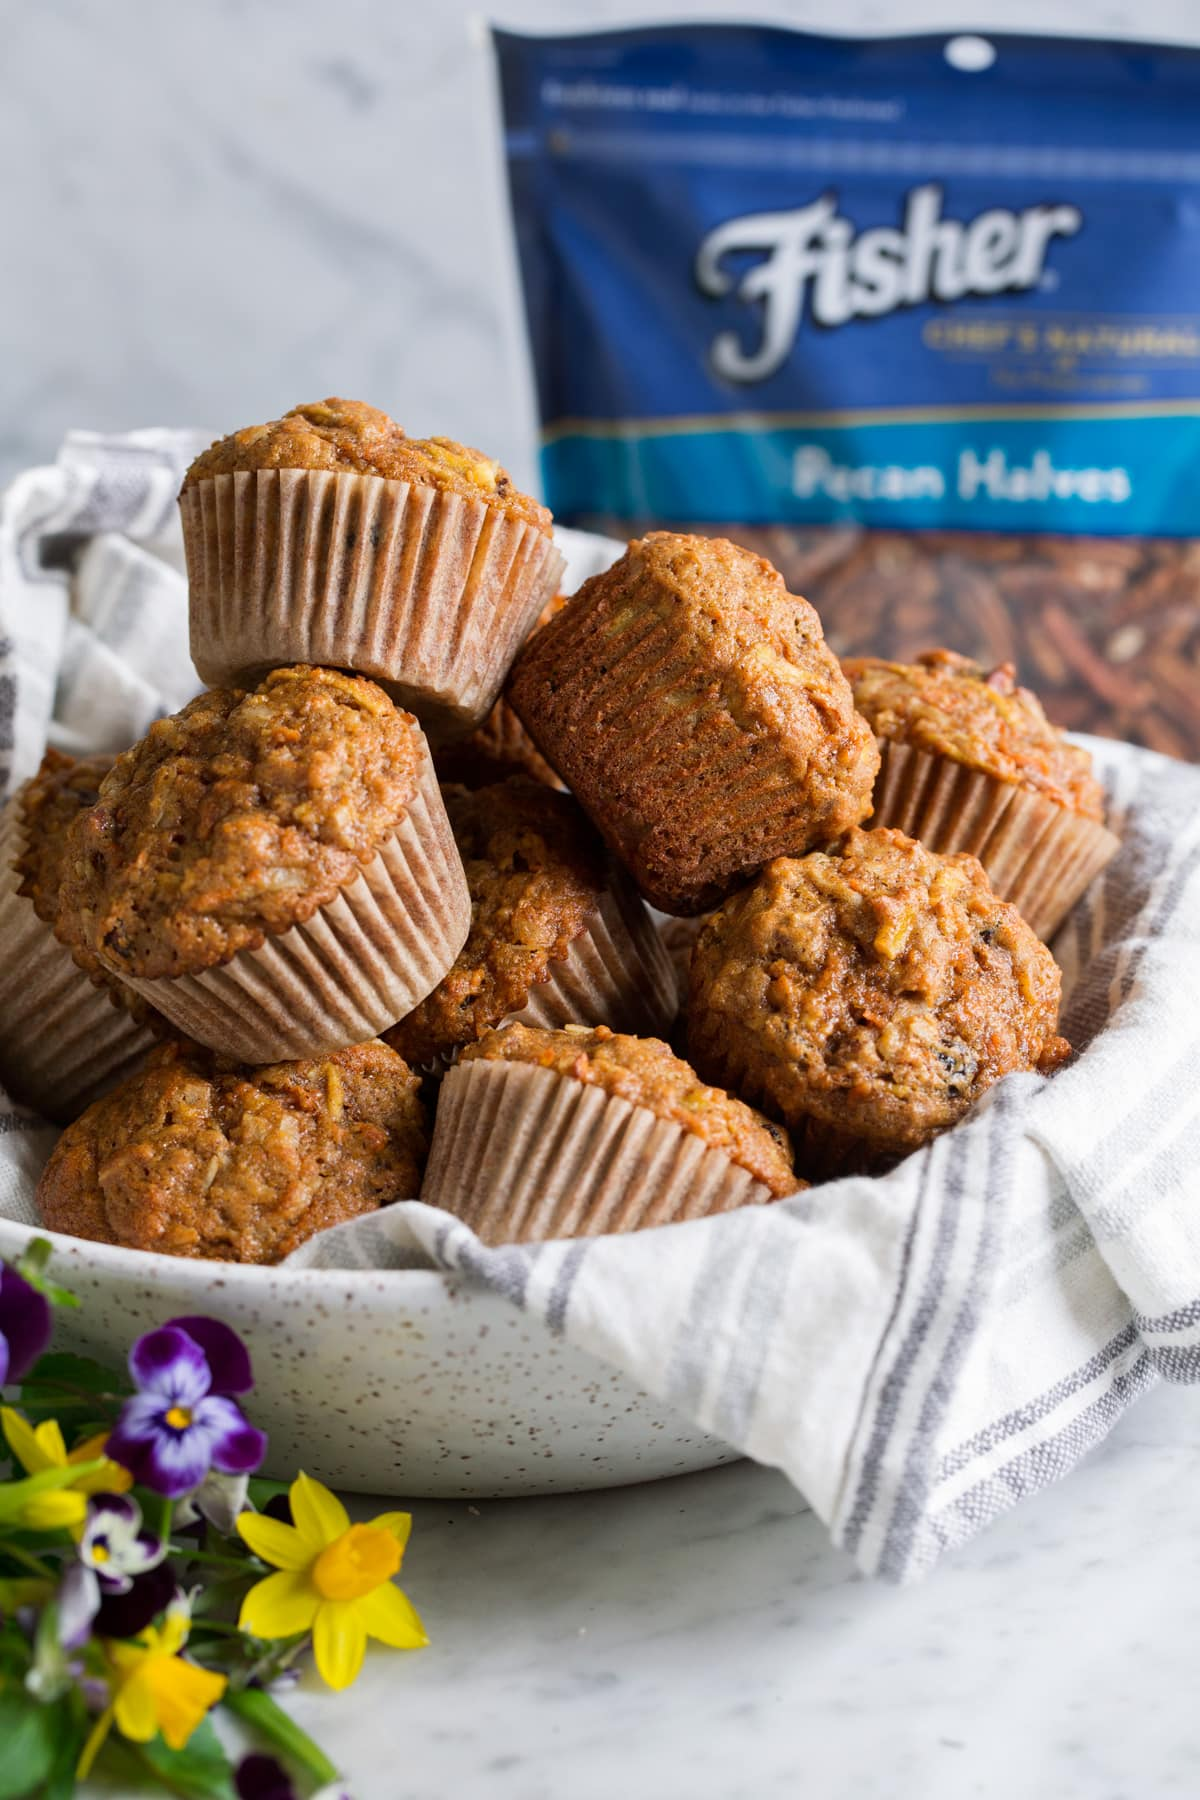 Morning glory muffins stacked in a speckled ceramic serving bowl